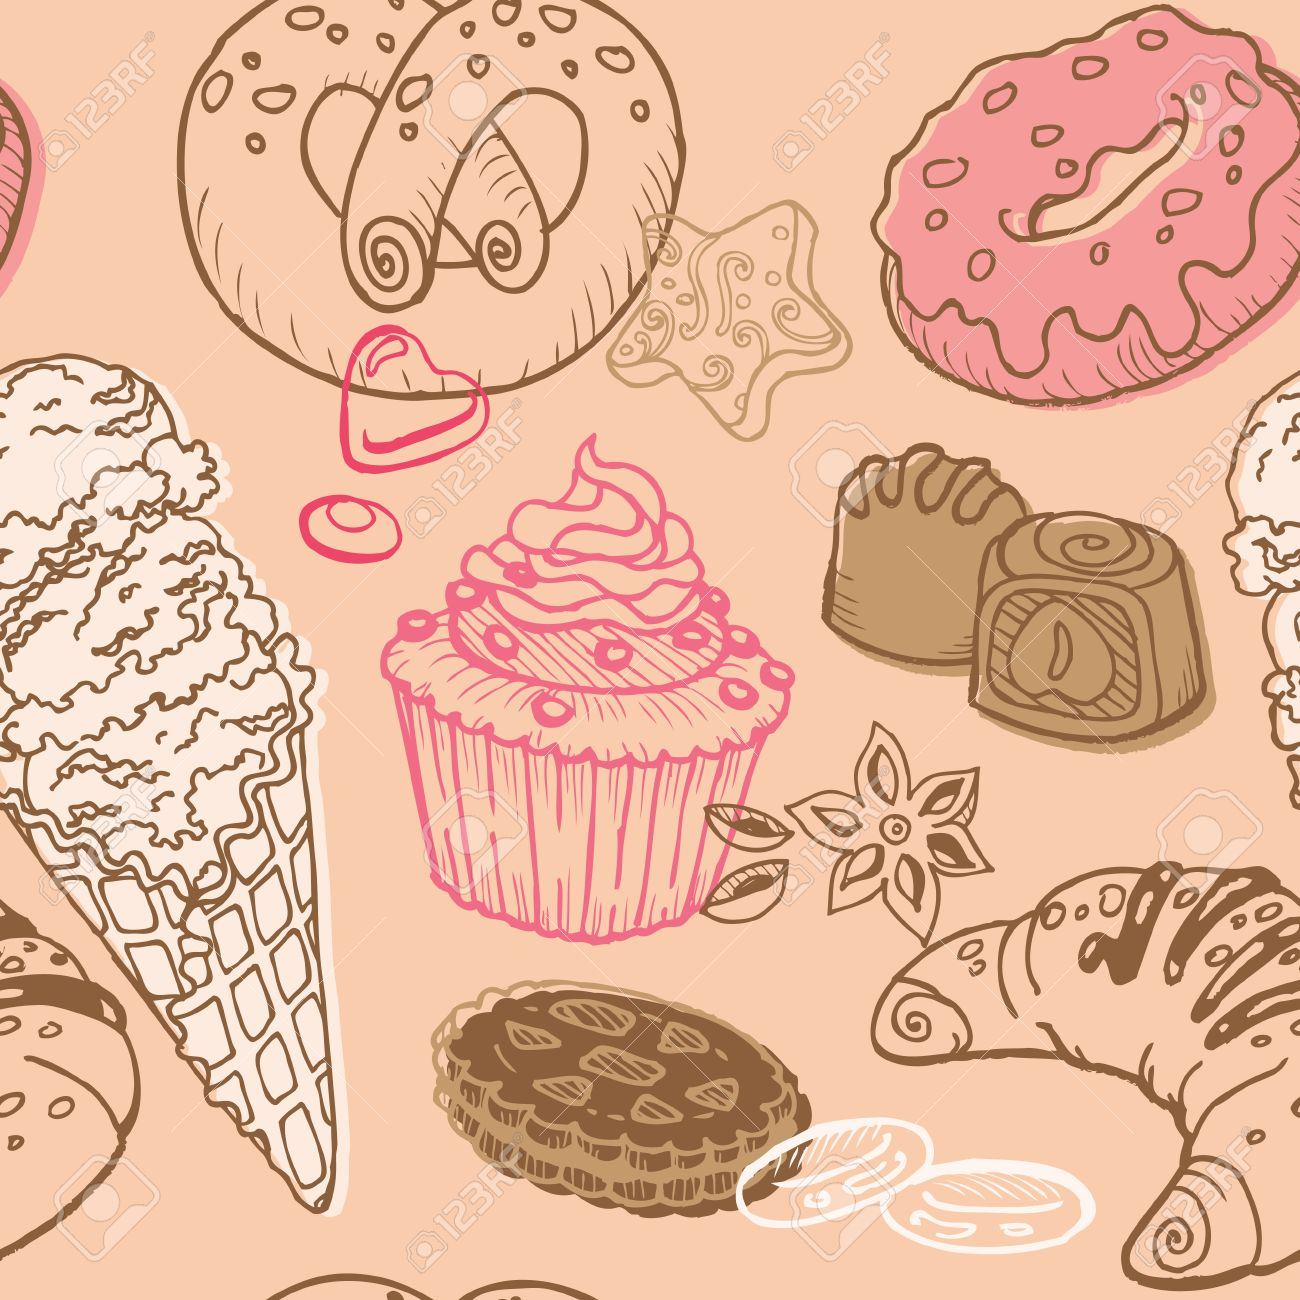 Seamless Background with Cakes, Sweets and Desserts - in vector Stock Vector - 12984231